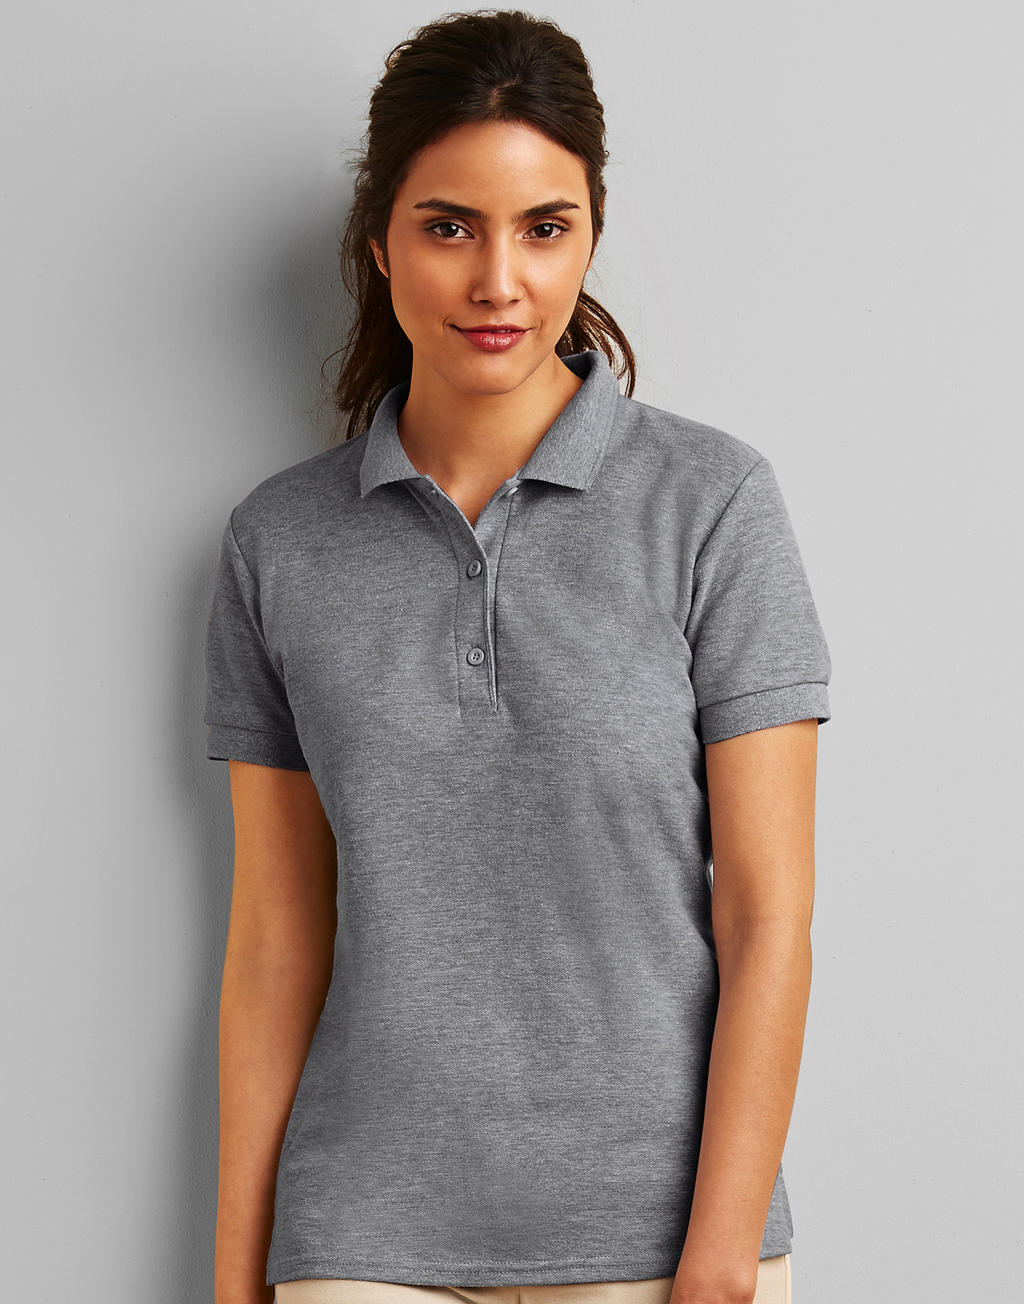 85800L PREMIUM COTTON® LADIES DOUBLE PIQUÉ polokošeľa